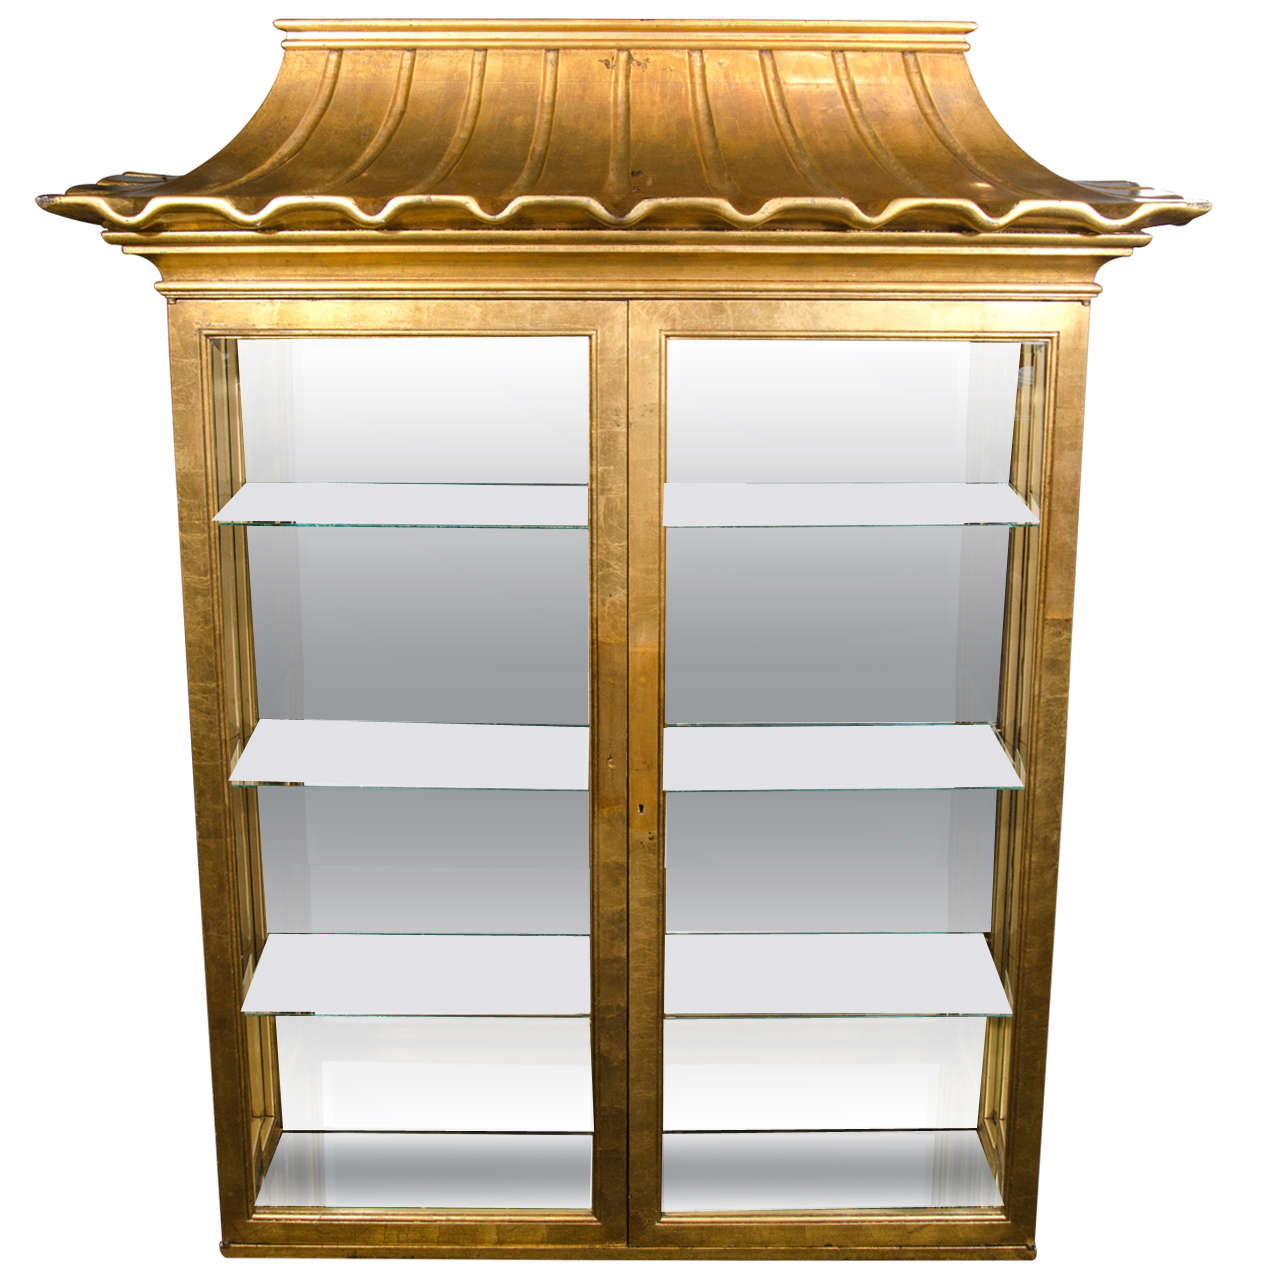 exceptional illuminated vitrine with pagoda design in the manner of james mont at 1stdibs. Black Bedroom Furniture Sets. Home Design Ideas